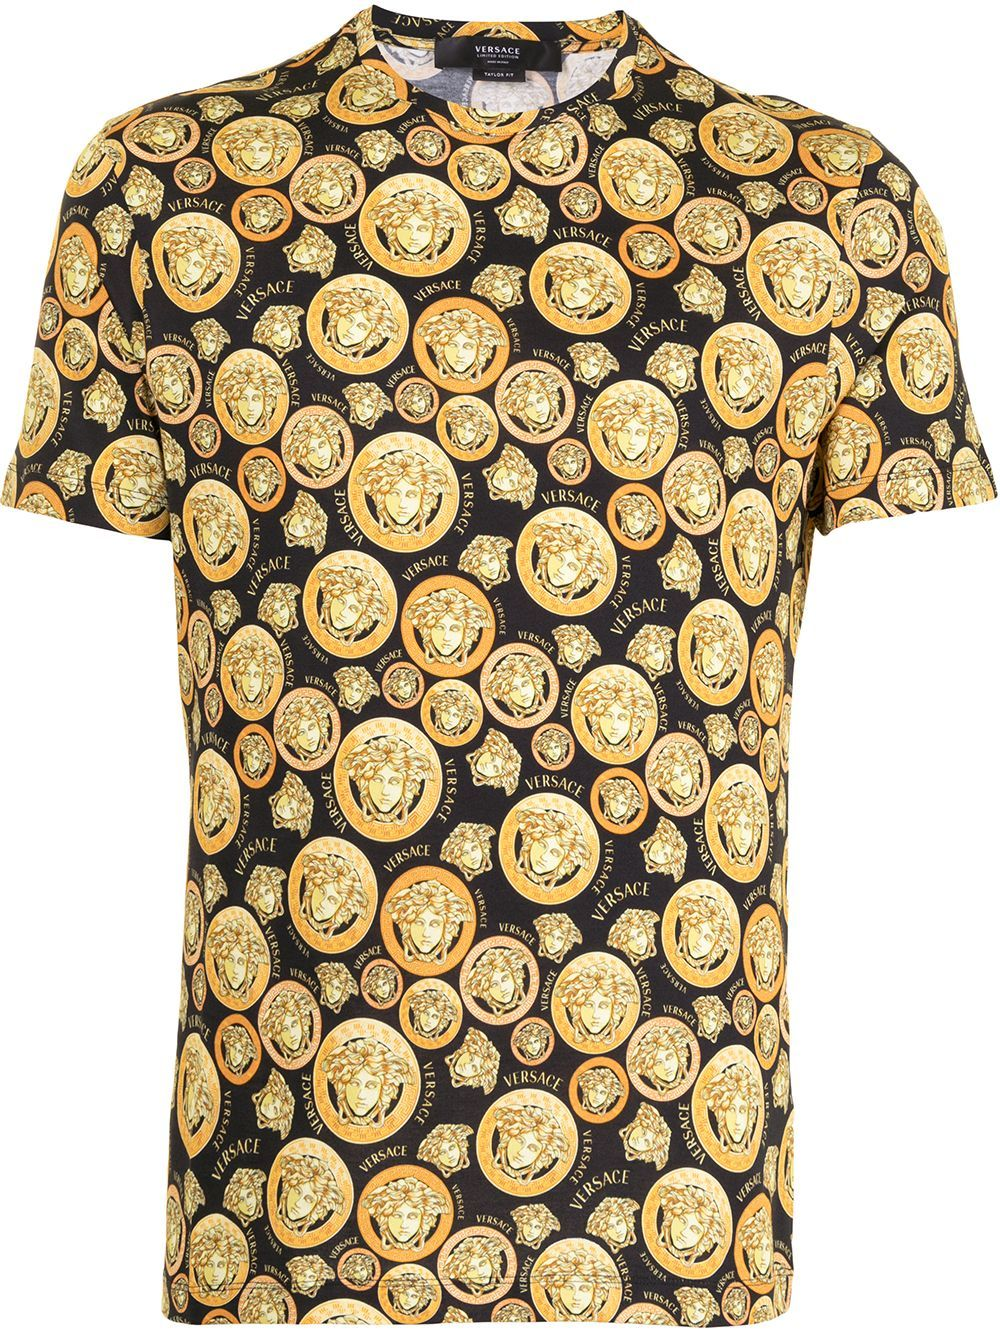 Versace VERSACE MEN'S GOLD COTTON T-SHIRT